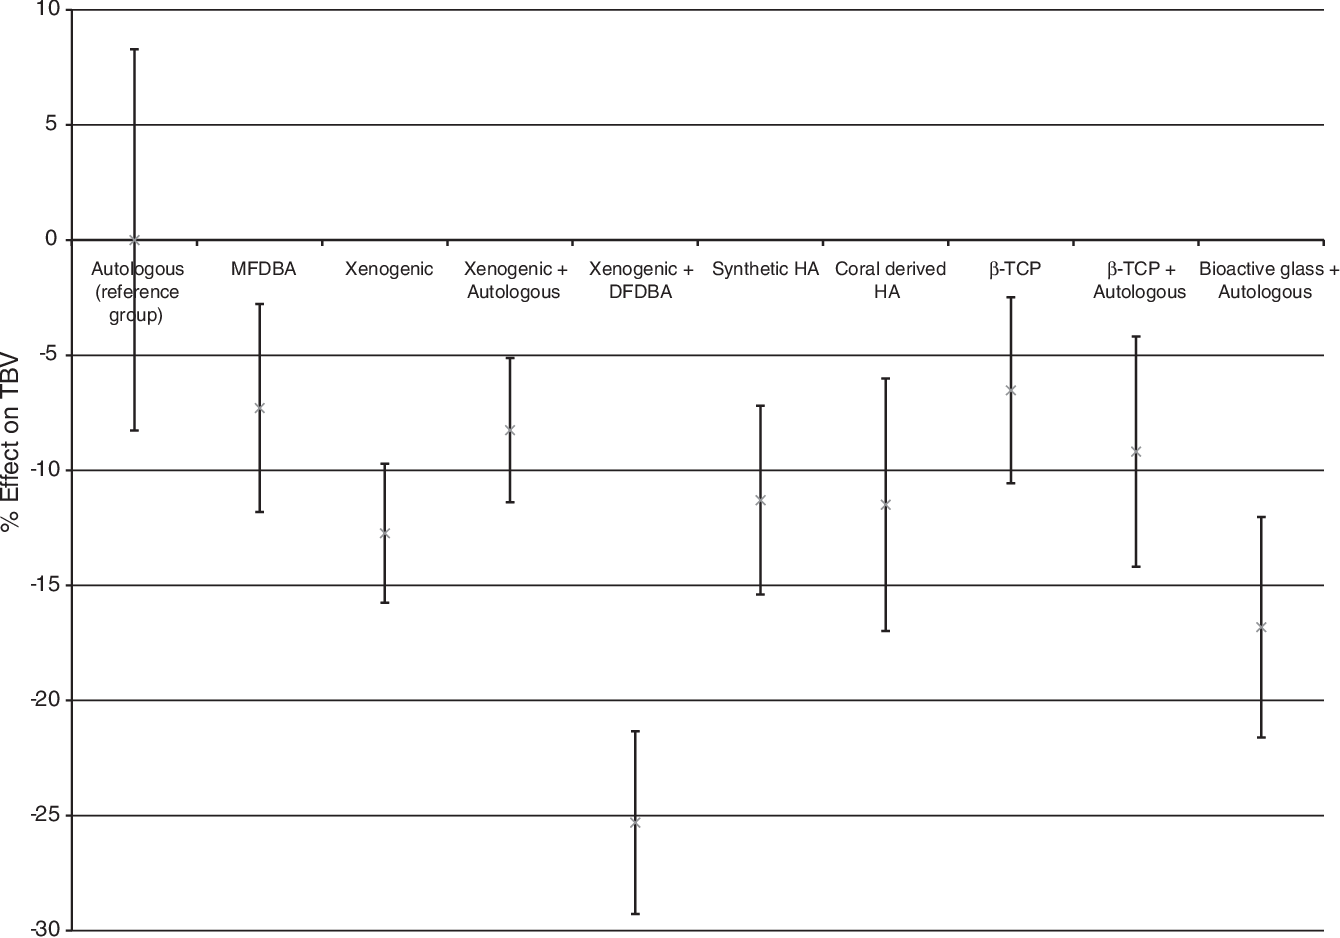 FIG. 1. Overview of the effect of type of grafting material on total bone volume compared to the reference (Table 14).